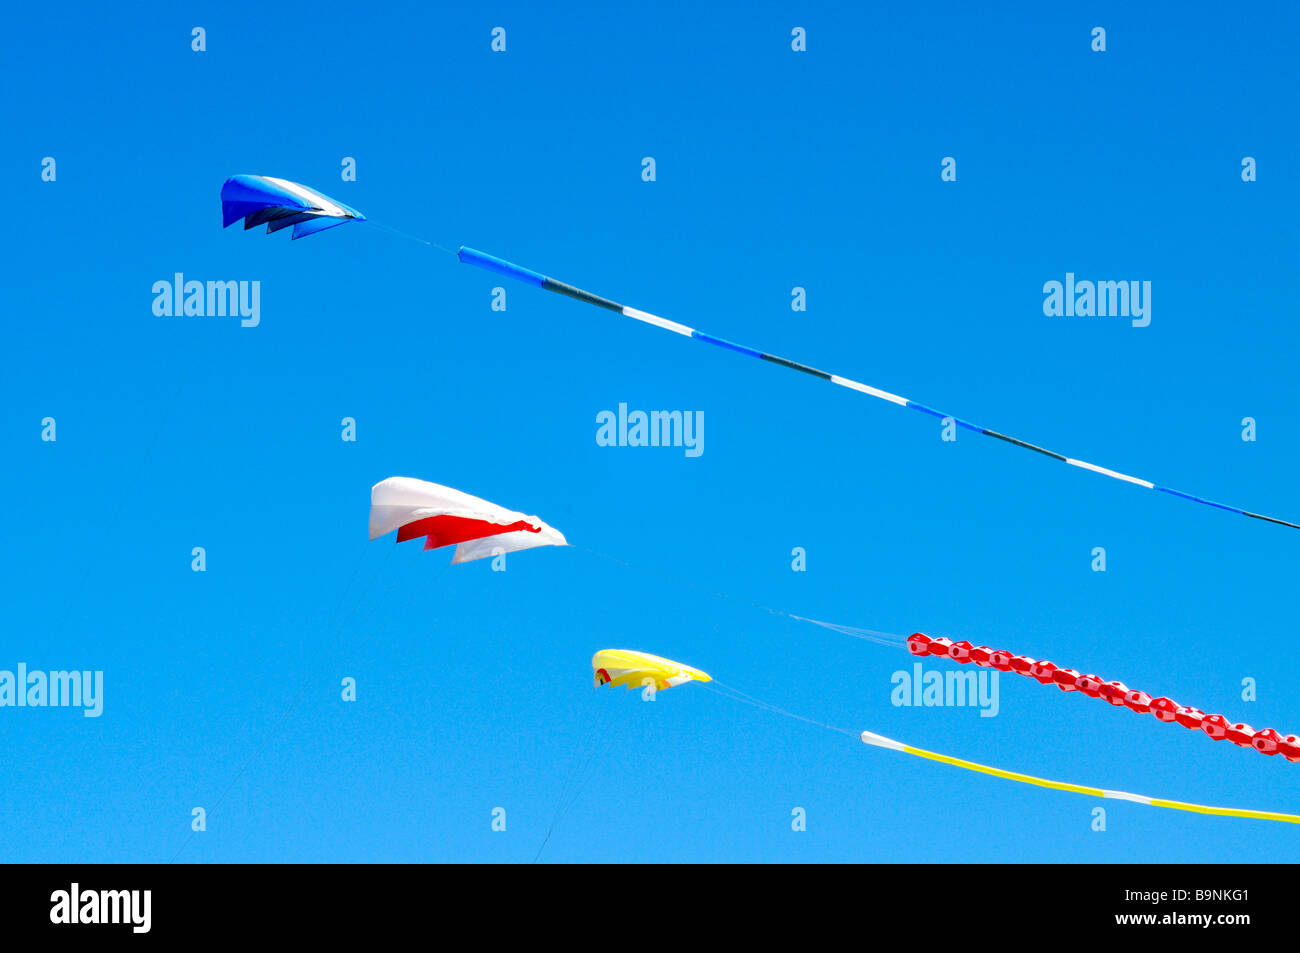 3 three colorful kites flying in the wind against a clear blue sky - Stock Image